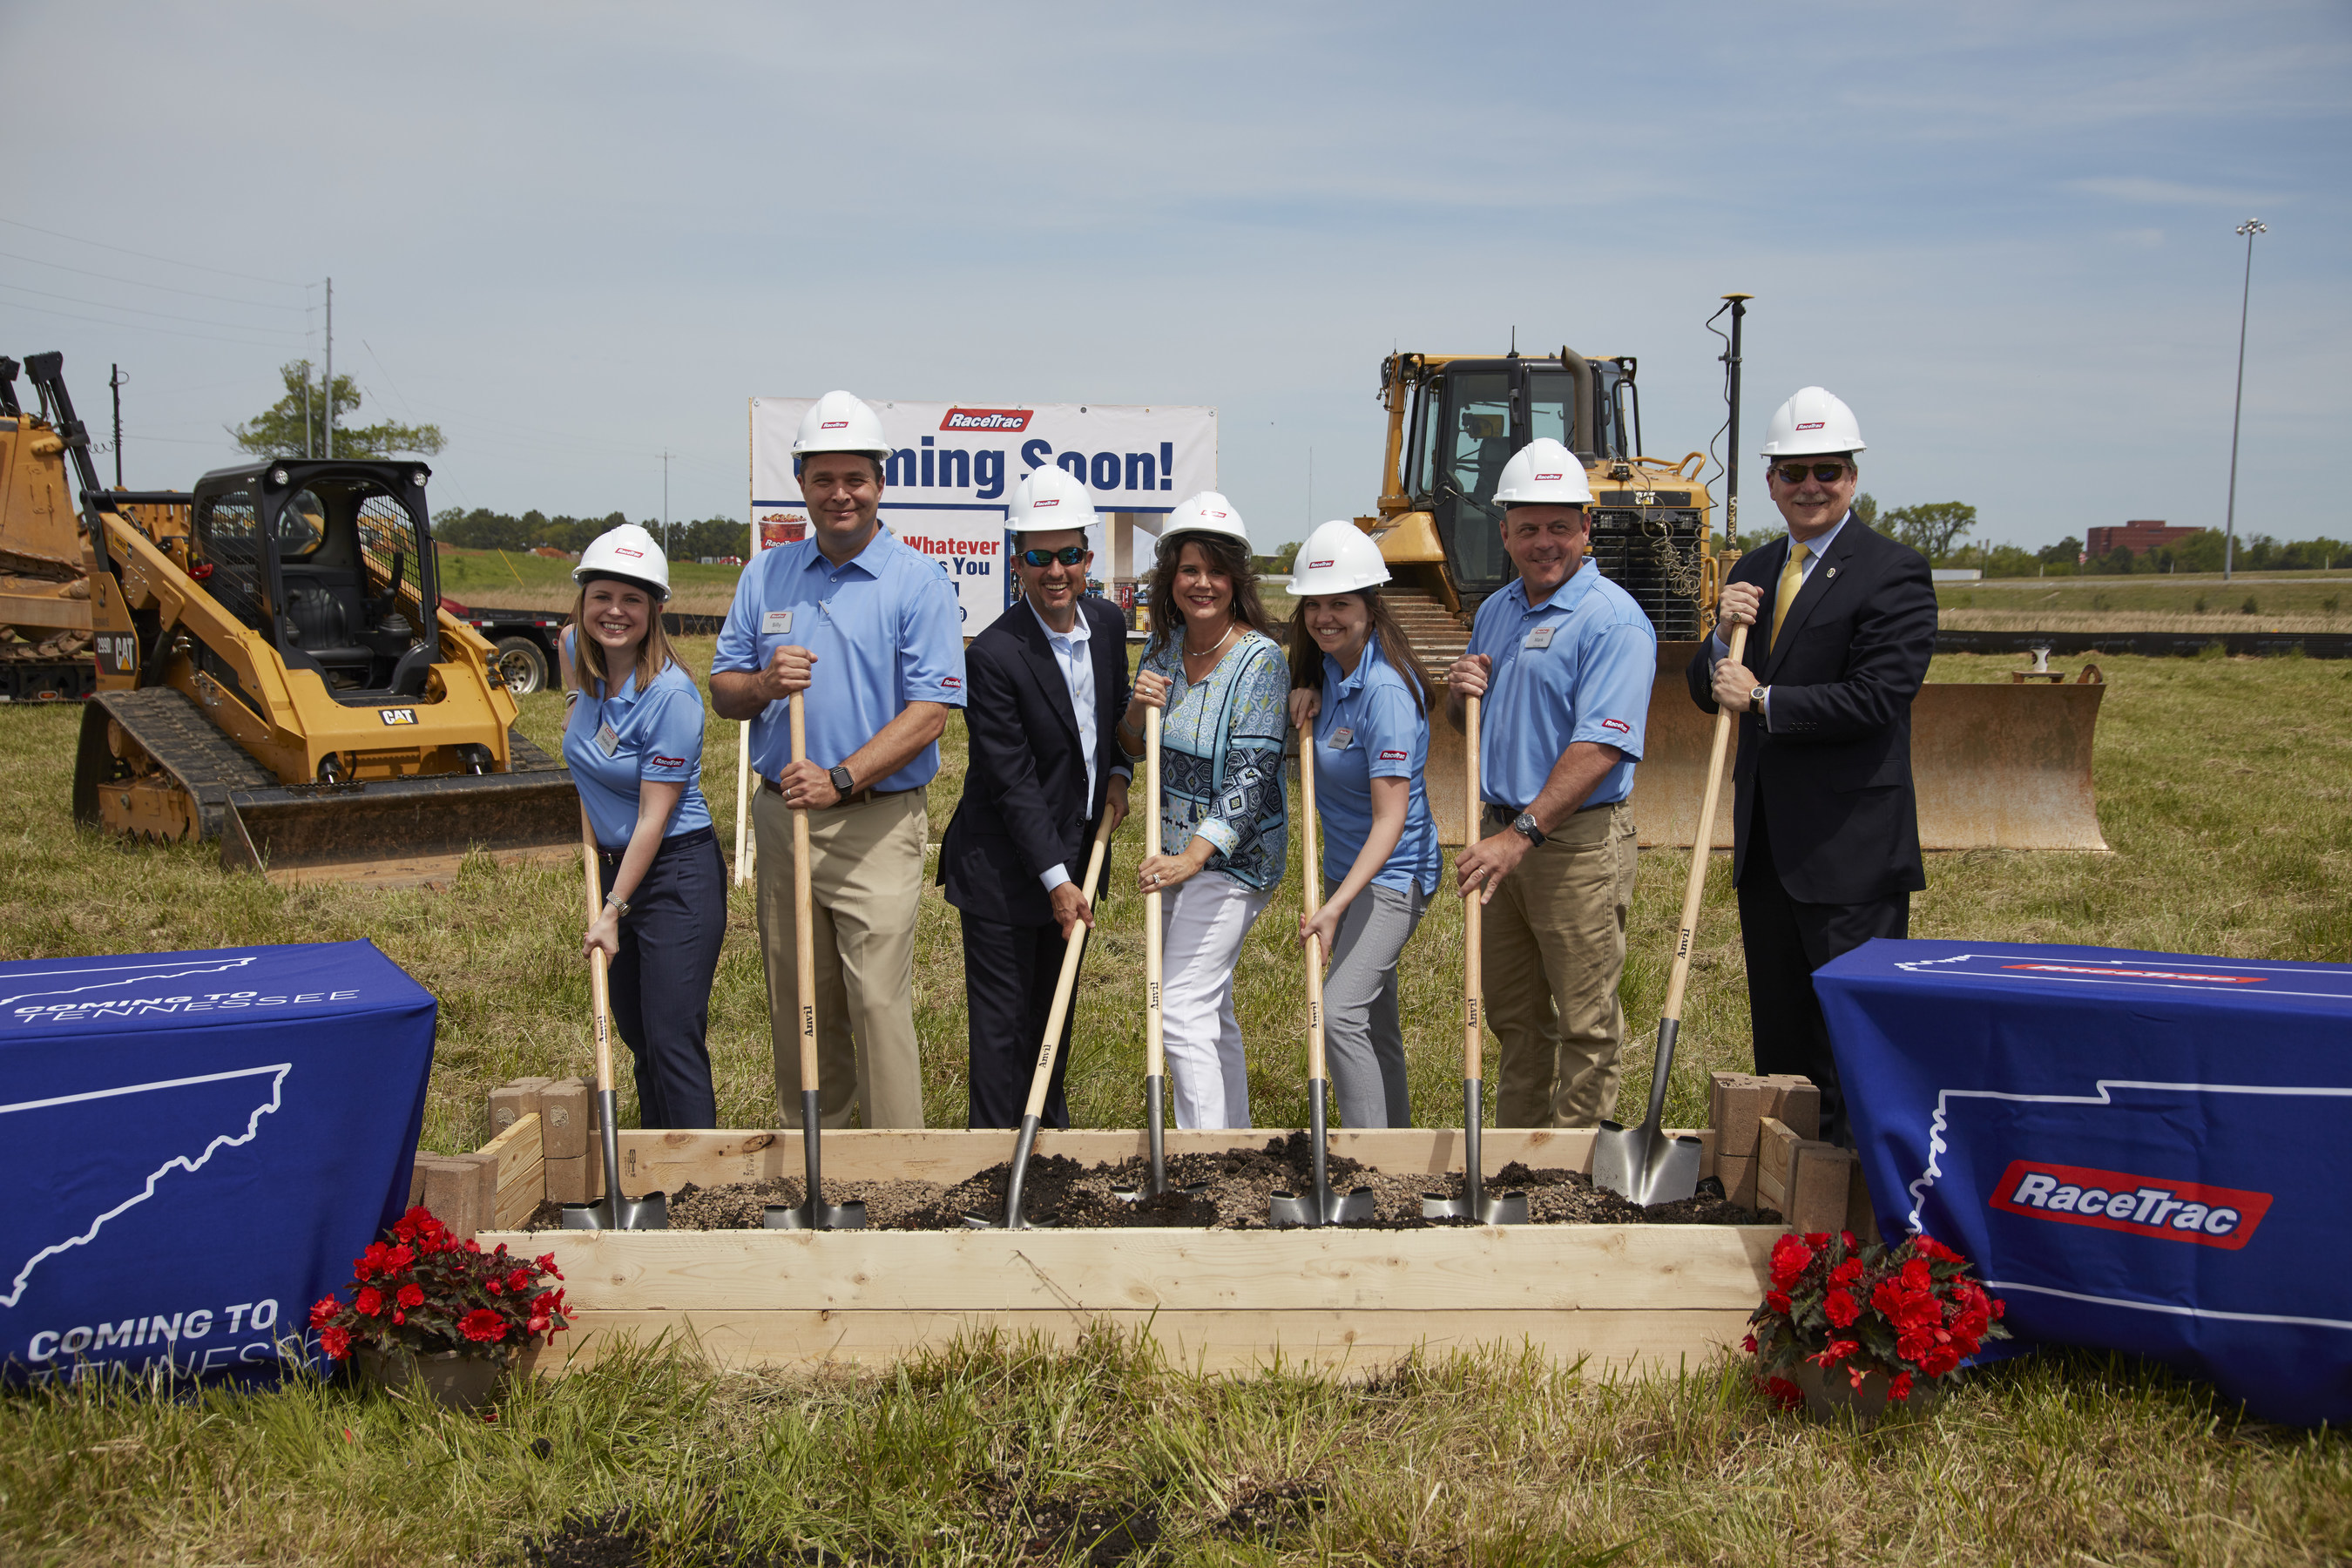 RaceTrac Celebrates Tennessee Expansion with Murfreesboro